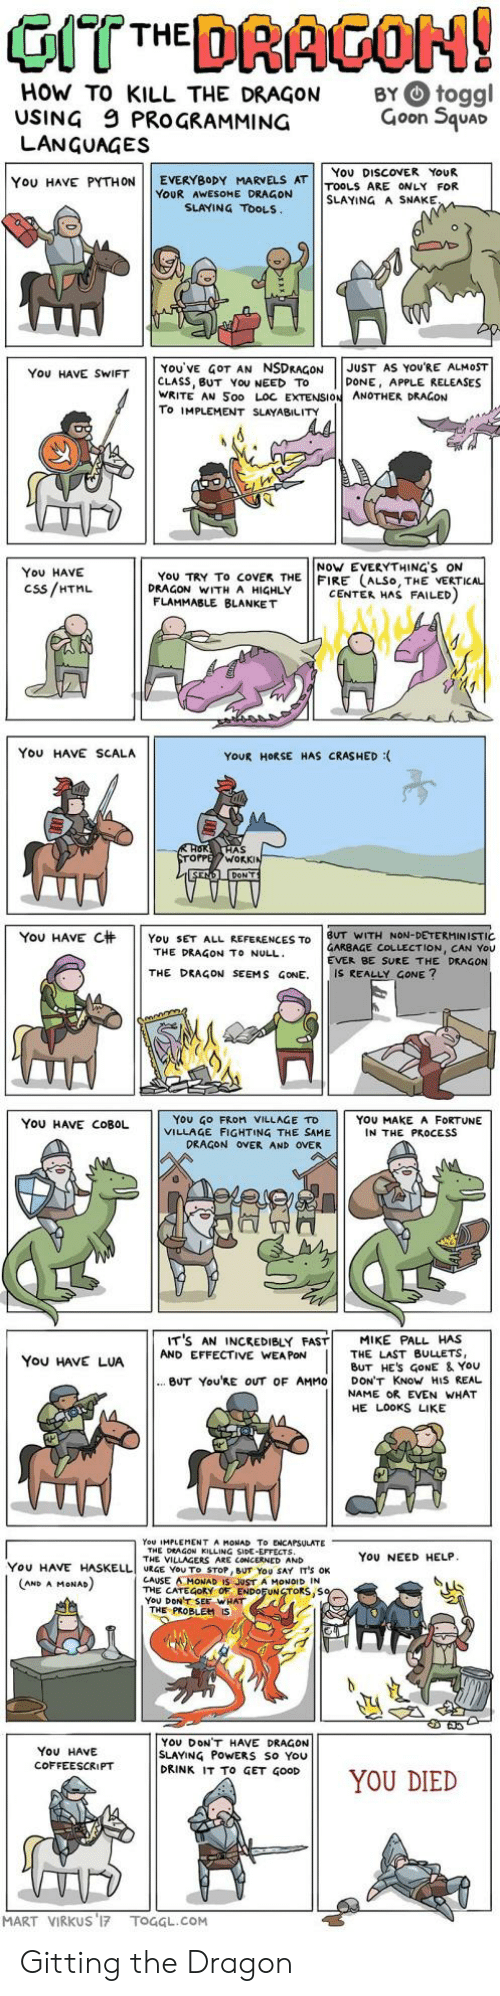 Apple, Fire, and Work: HOW TO KILL THE DRAGON  USING 9 PROGRAMMING  LANGUAGES  BY O toggl  Goon Squar  You DISCOVER YoUR  YOU HAVE PYTHON | | EVERYBODY MARVELS AT | |TOOLS ARE ONLY FOR  YOUR AWESOME DRAGON  SLAYING A SNAKE  SLAYING TOOLS  YOU'VE GOT AN NSDRAGONJUST AS YOURE ALMOST  CLASS, BUT YoU NEED TO  WRITE AN Soo LOC EXTENSION ANOTHER DRAGON  To IMPLEMENT SLAYABILITY  You HAVE SWIFT  DONE, APPLE RELEASES  NoW EVERYTHING'S ON  You HAVE  Css/HTML  YoU TRY To coVEK THE FIRE (ALSo, THE VERTI  DRAGON WITH A HIGHLY  CENTER HAS FAILED  FLAMMABLE BLANKET  You HAVE SCALA  YOUR HORSE HAS CRASHED :  AS  WORK  YOU HAVE C杄 | | YOU SET ALL REFERENCES TO | BUT WITH NON-DETERMINISTIC  GARBAGE COLLECTION, CAN You  EVER BE SURE THE DRAGON  THE DRAGON TO NULL  THE DRAGON SEEMS GONE. IS REALLY GONE?  YoU GO FRoM VILLAGE TD  VILLAGE FIGHTING THE SAME  YOU HAVE COBOL  YOU MAKE A FORTUNE  IN THE PROCESS  DRAGON OVER AND OVER  IT'S AN INCREDIBLY FAST! MIKE PALL HAS  You HAVE LUAAND EFFECTIVE WANE ES  THE LAST BULLETS,  BUT HES GoNE & YoU  BUT You'RE OUT OF AMMO DON'T KNoW HIS REAL  NAME OR EVEN WHAT  HE LOOKS LIKE  You IMPLEMENT A MONAD To ENCAPSULATE  THE DEAGON KILLING SIDE-EFFECTS  THE VILLAGERS ARE CONCERNED AND  YoU NEED HELP  YOU HAVE HASELLI URGE YOU To STOP, BUT YOU SAY IT'S OK  CAUSE AMONAD IS JUST A MONOID IN  THE CATEGORY OF ENDOFUNSTORS,S  YoU DONT SEE WHAT  AND A MoNAD  THE PROBLEM  YOU DONT HAVE DRAGON  SLAYING PoWERS So You  DRINK IT To GET GOOD  ON11 YOU DIED  You HAVE  COFFEESCRIPT  MART VIRKUS 17 TOGGL.COM Gitting the Dragon